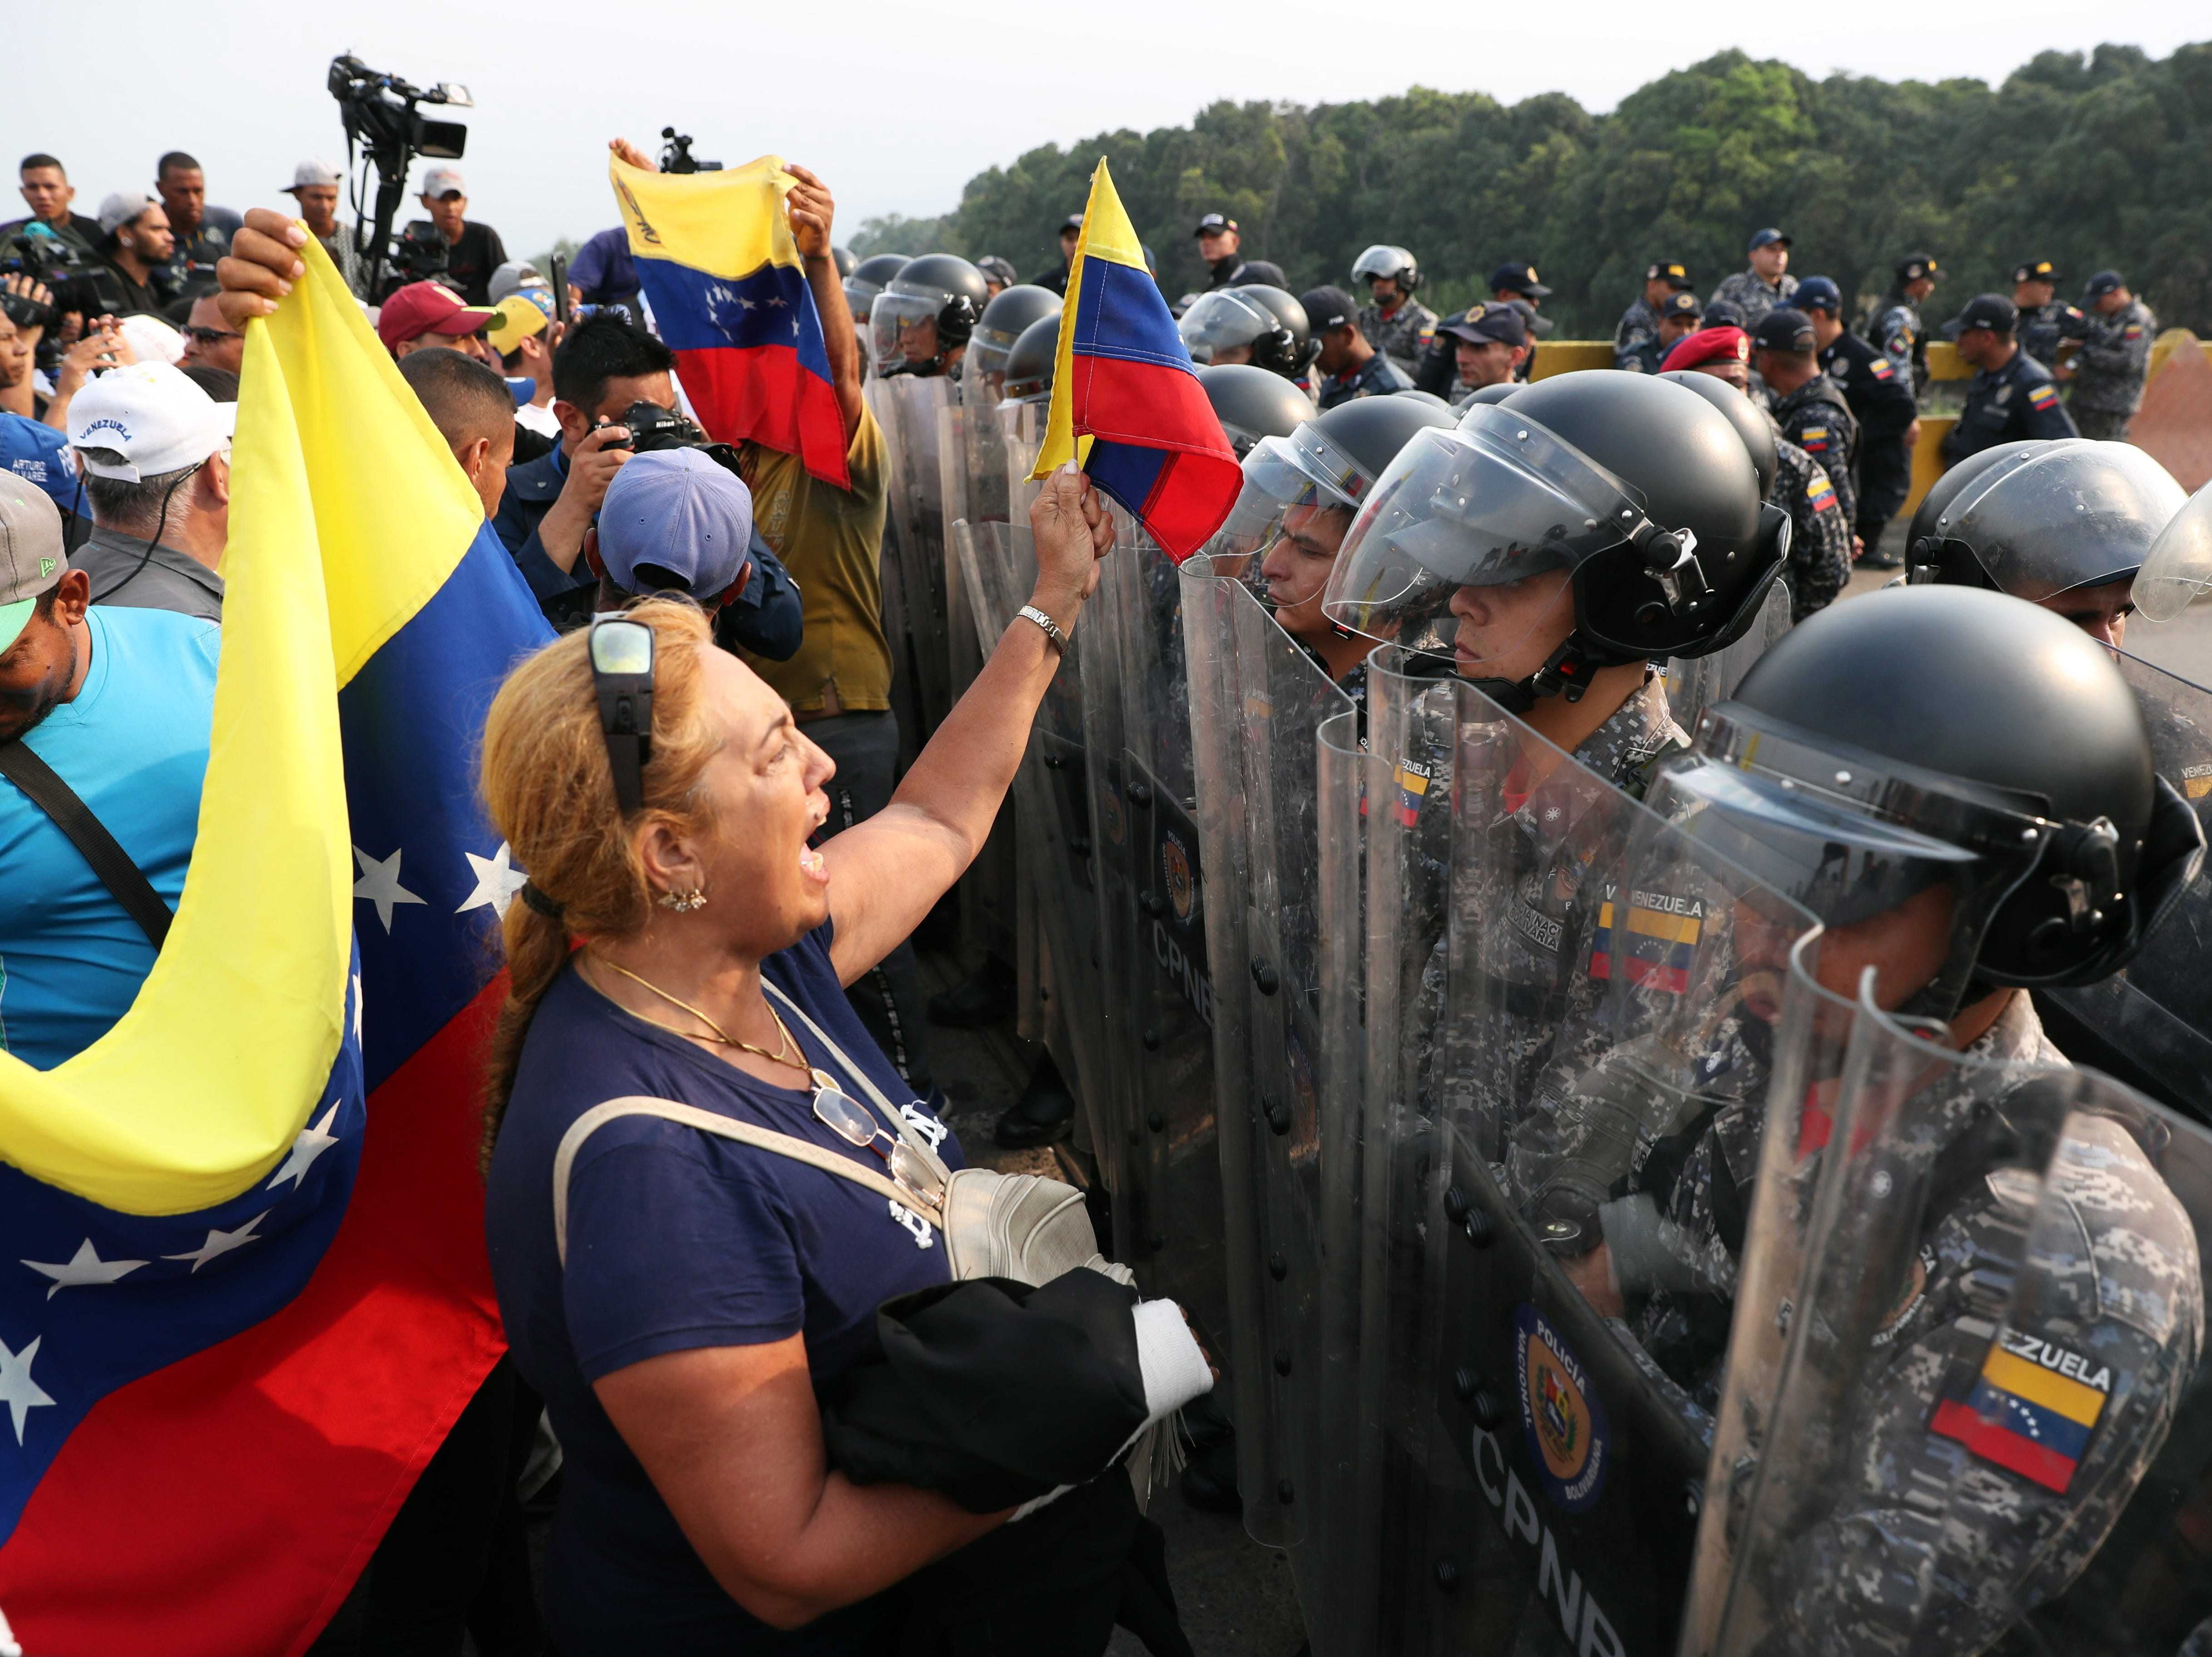 Venezuelans stand in front of Venezuelan Army forces members at the Simon Bolivar bridge on the border with Venezuela, in Cucuta, Colombia on Feb. 23, 2019. In the Colombia-Venezuela frontier bridges, hundreds of people are expecting for the crossing of the Humanitarian Aid, as it has been announced by the Parliament President Juan Guaido .